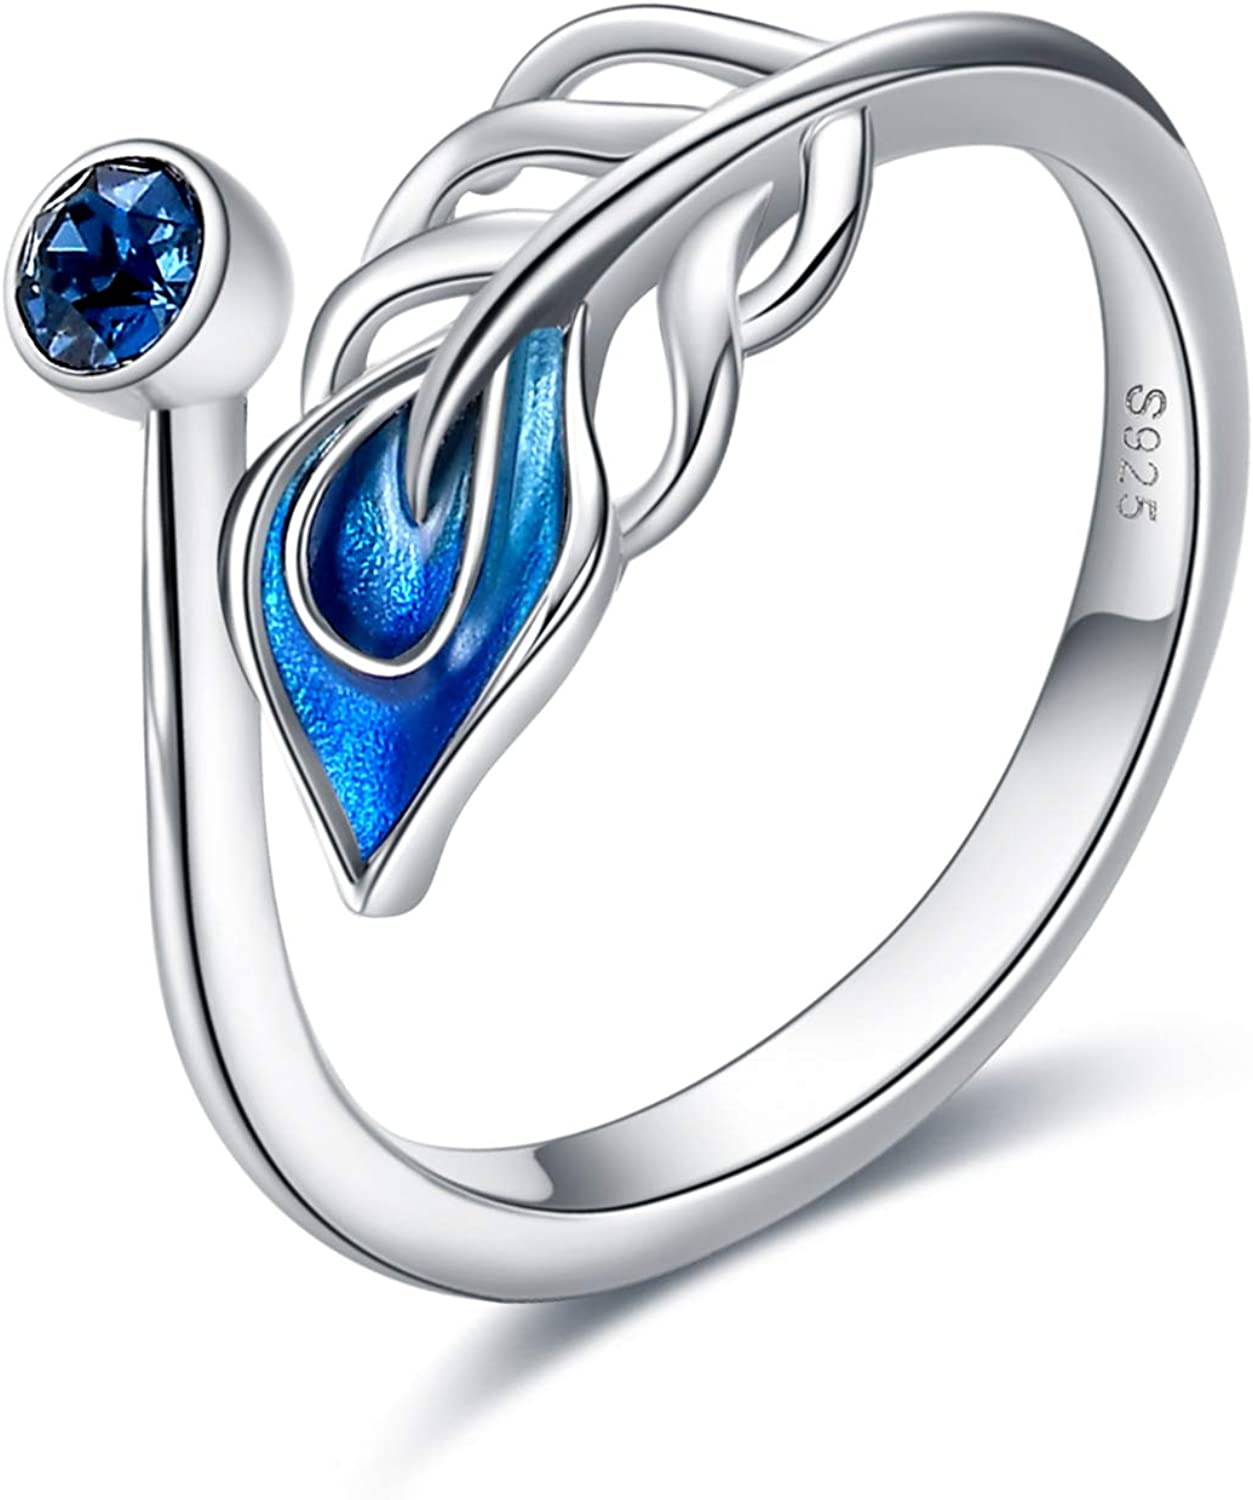 Feather Jewellery Gifts VONALA Feather Ring for Women S925 Sterling Silver Blue Feather Rings